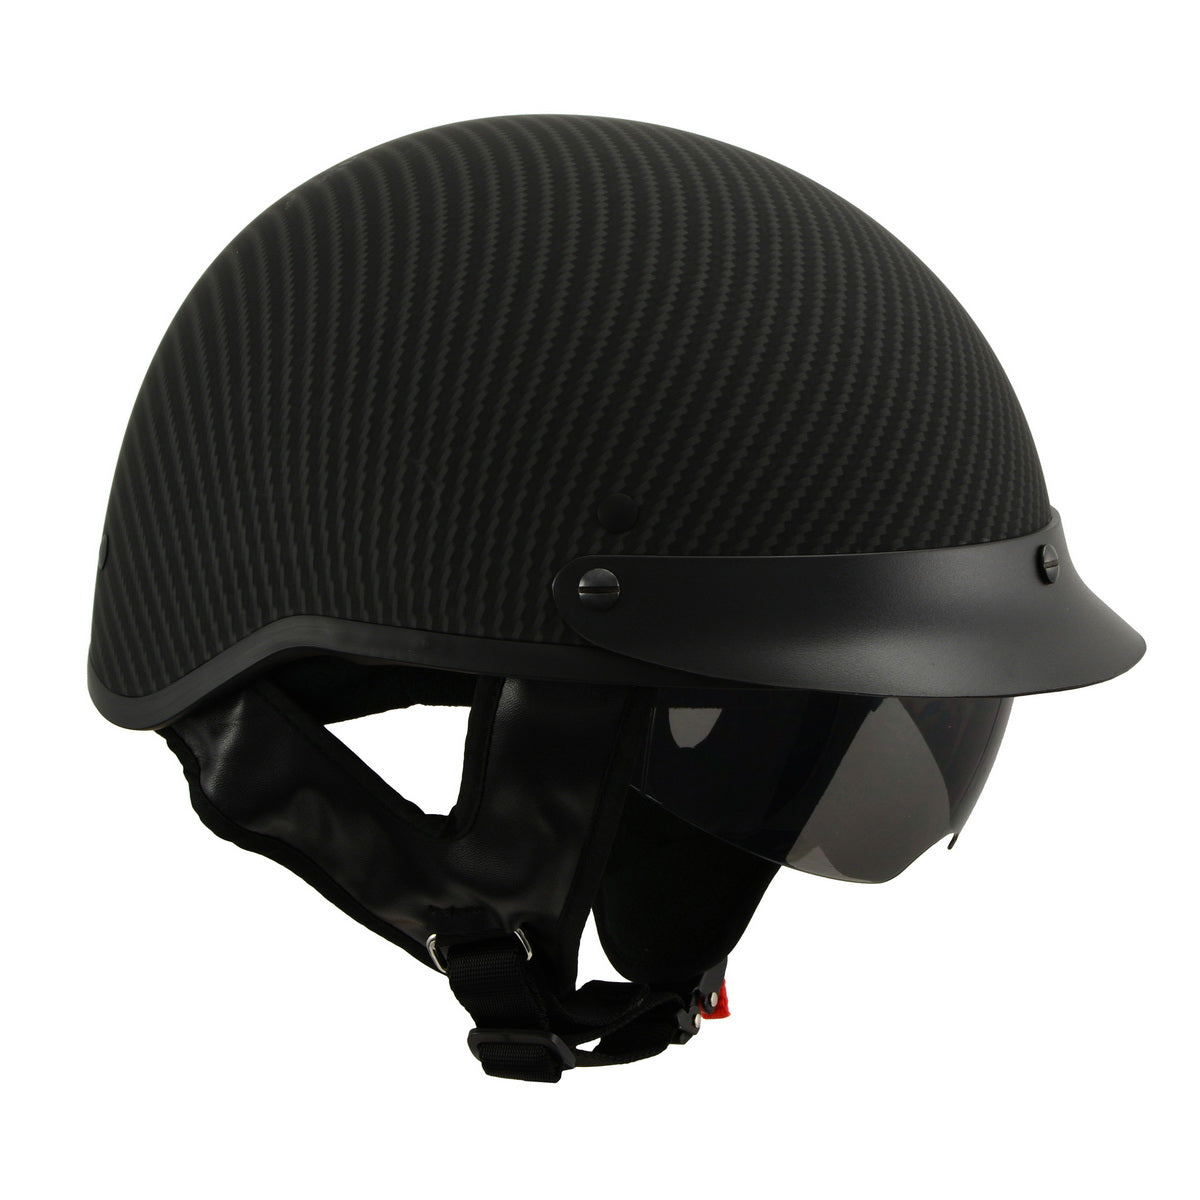 Milwaukee Performance Helmet MPH9722DOT Matte Black DOT Helmet with